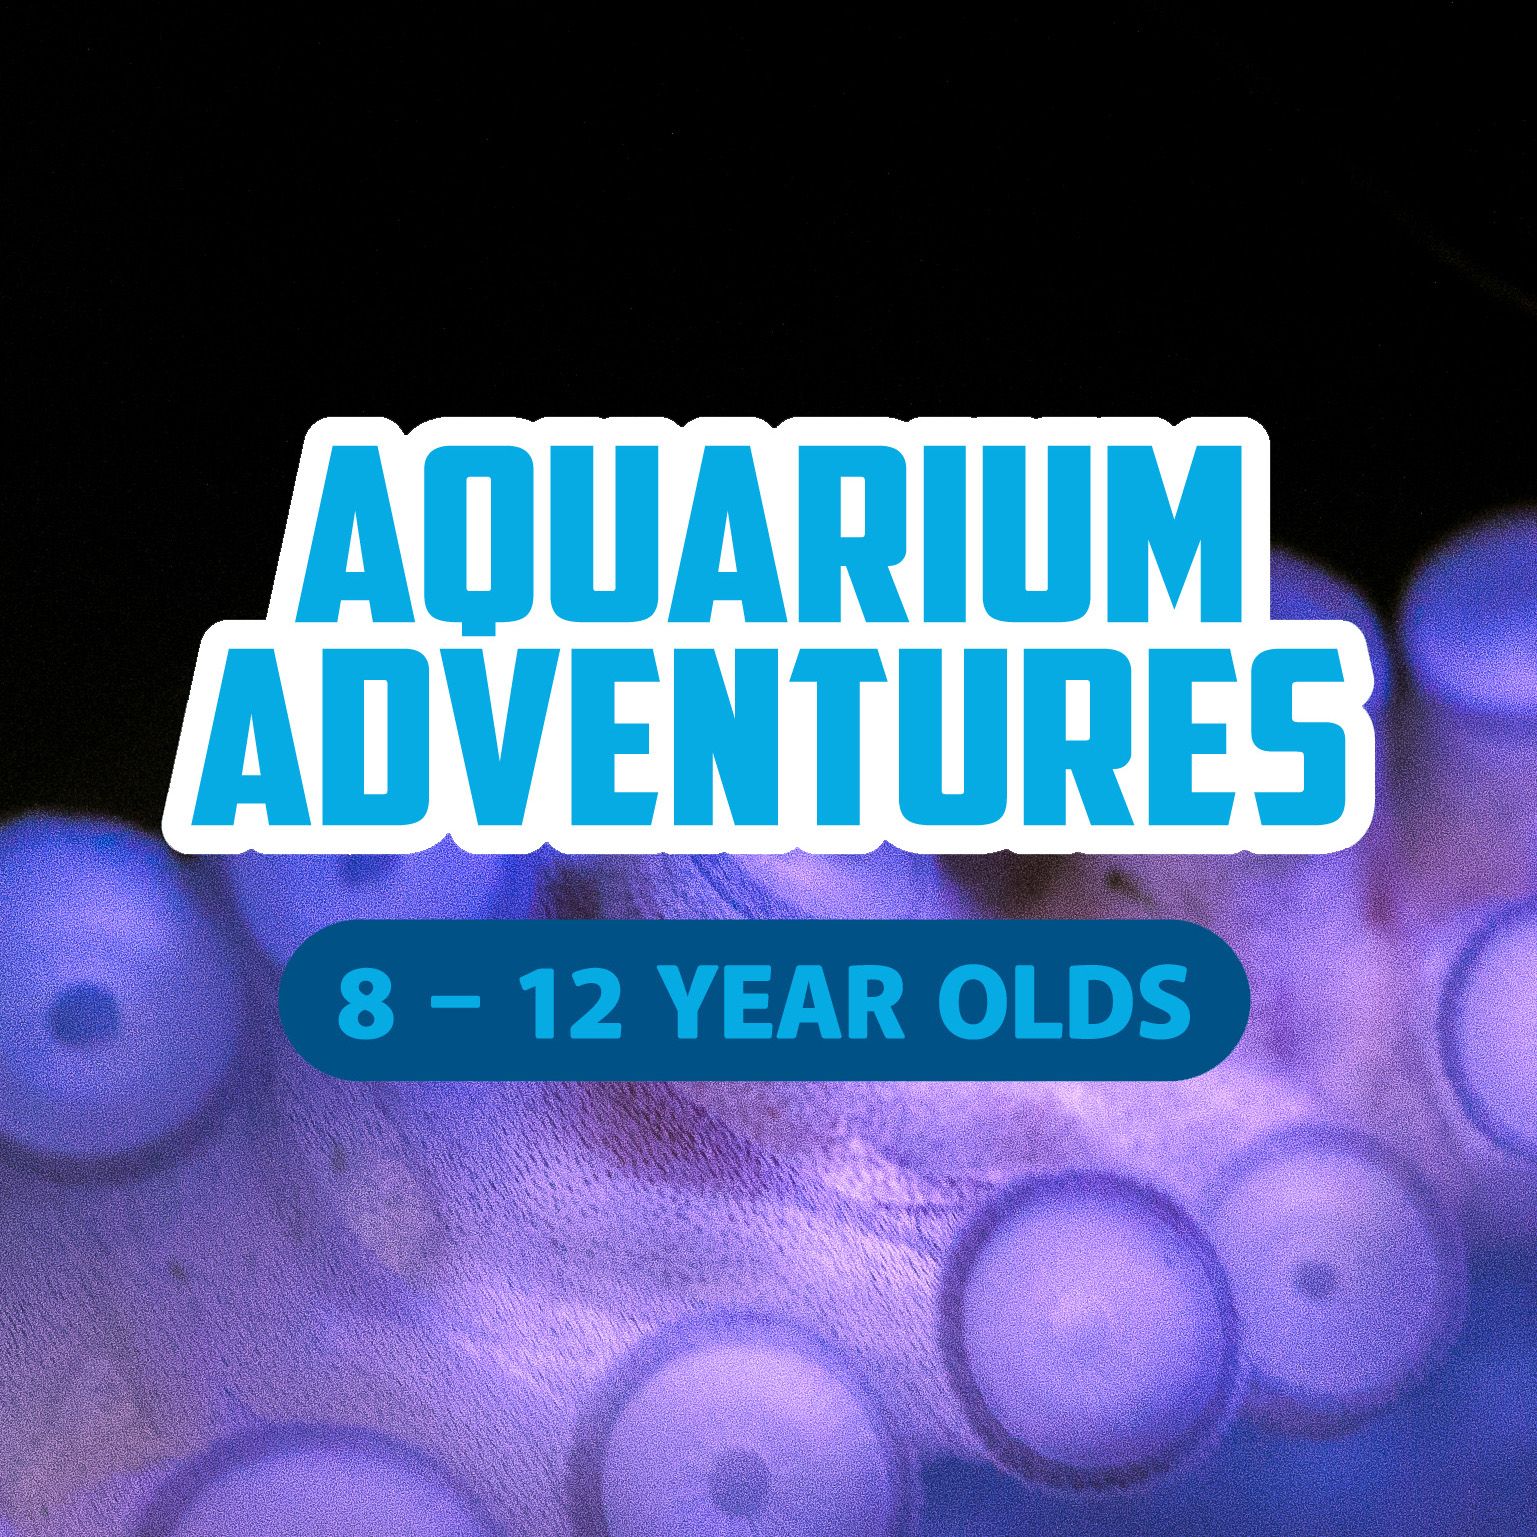 Aquarium Adventures Party | 8 - 12 year olds